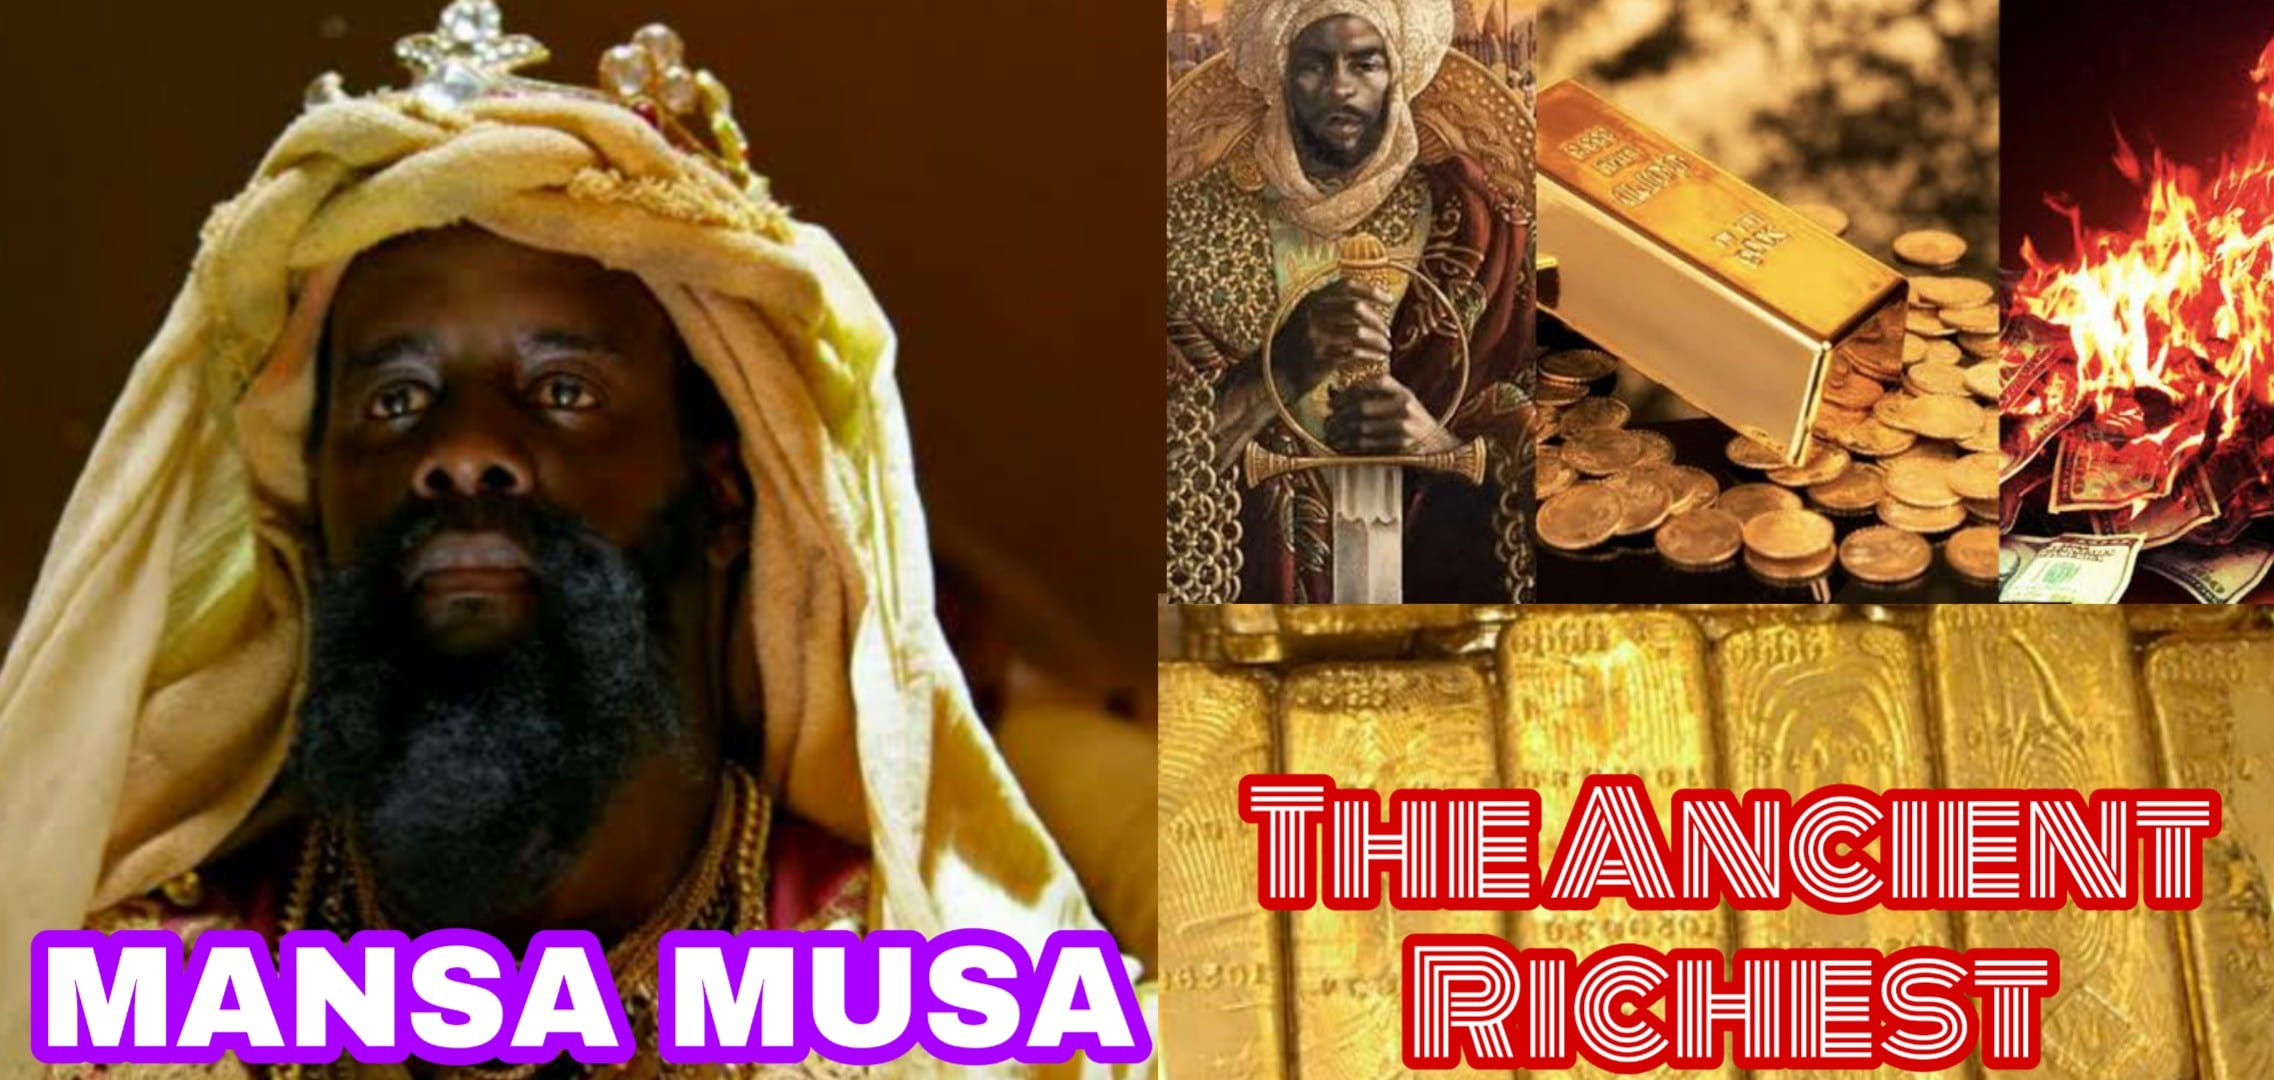 Mansa Musa Net worth : What is the Total Net worth of Mansa musa